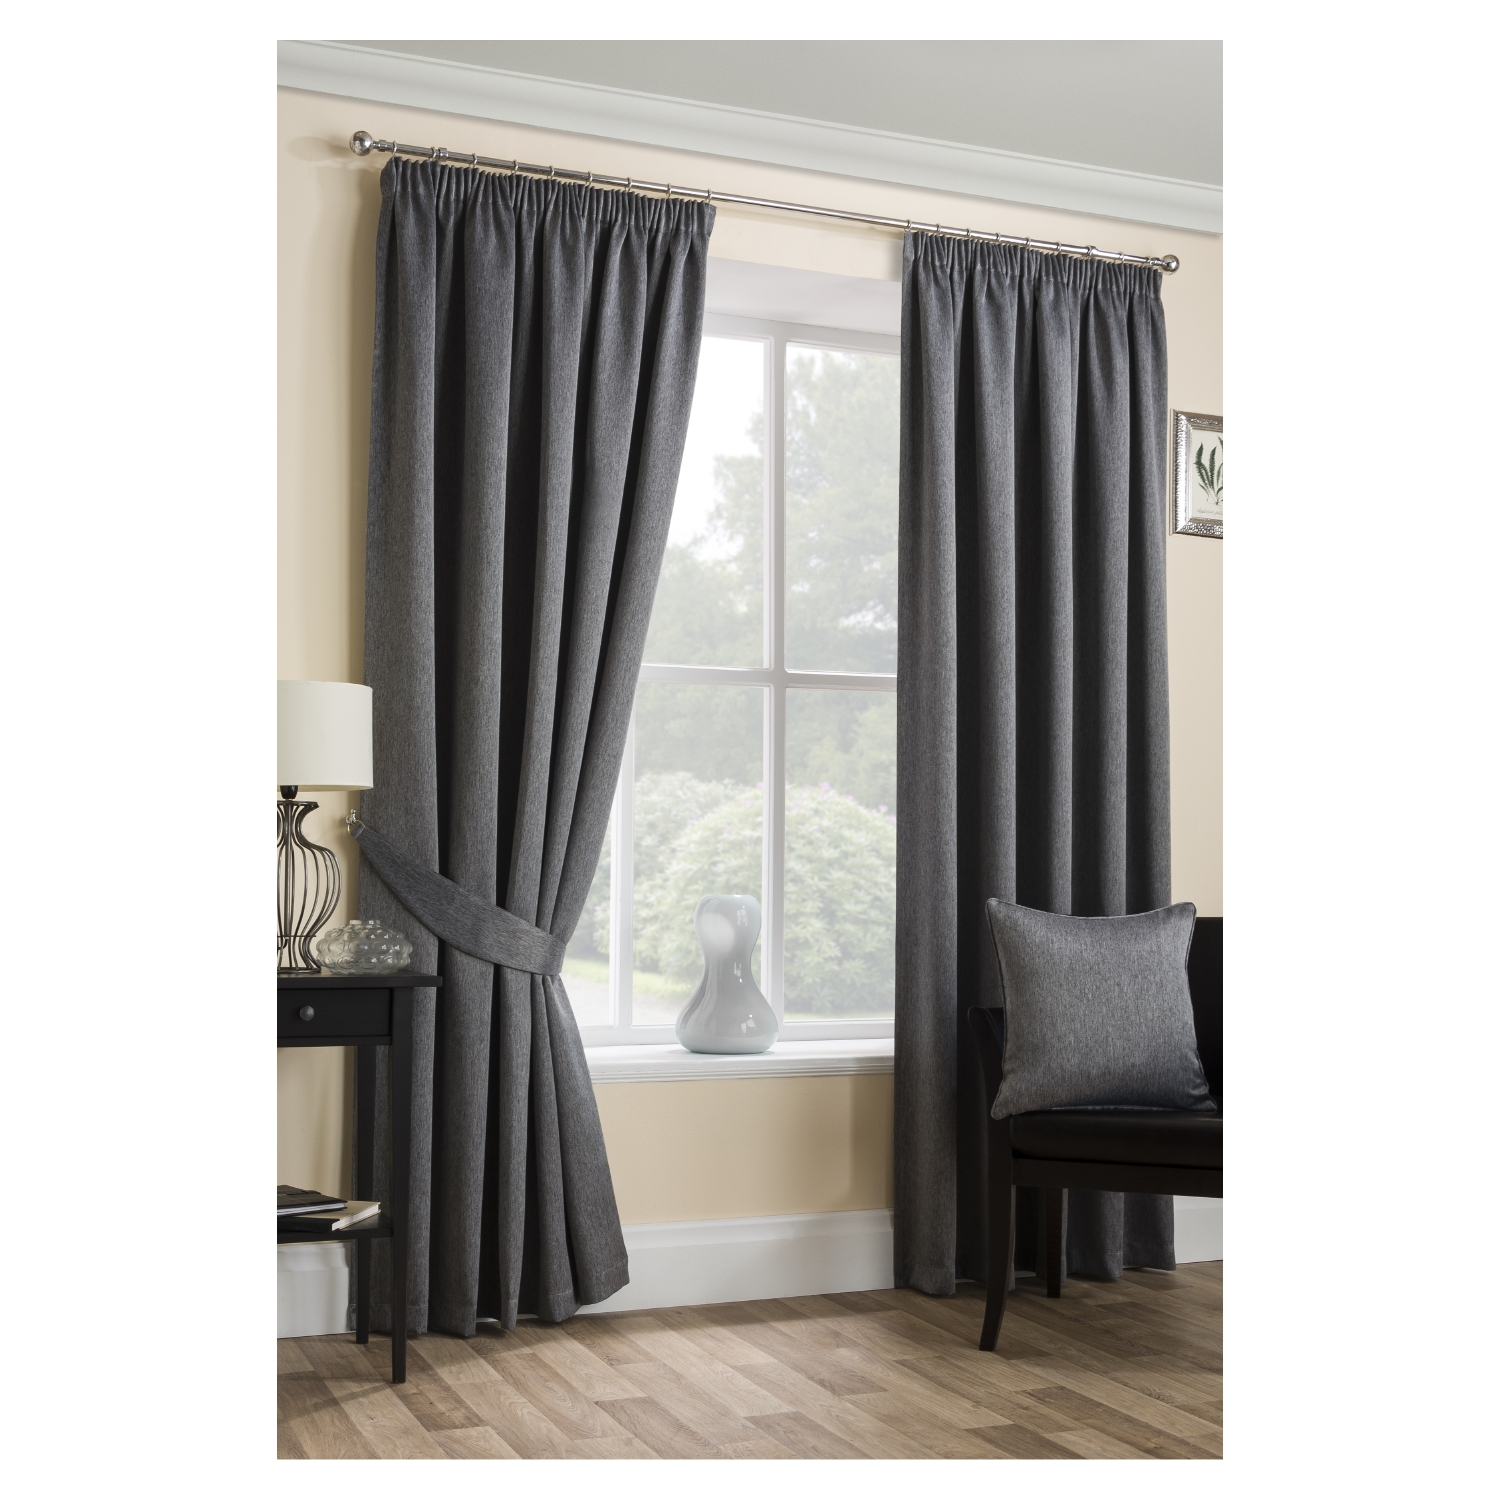 Cheapest Thermal Curtains | Cheap Window Treatments | Cheap Blackout Curtains